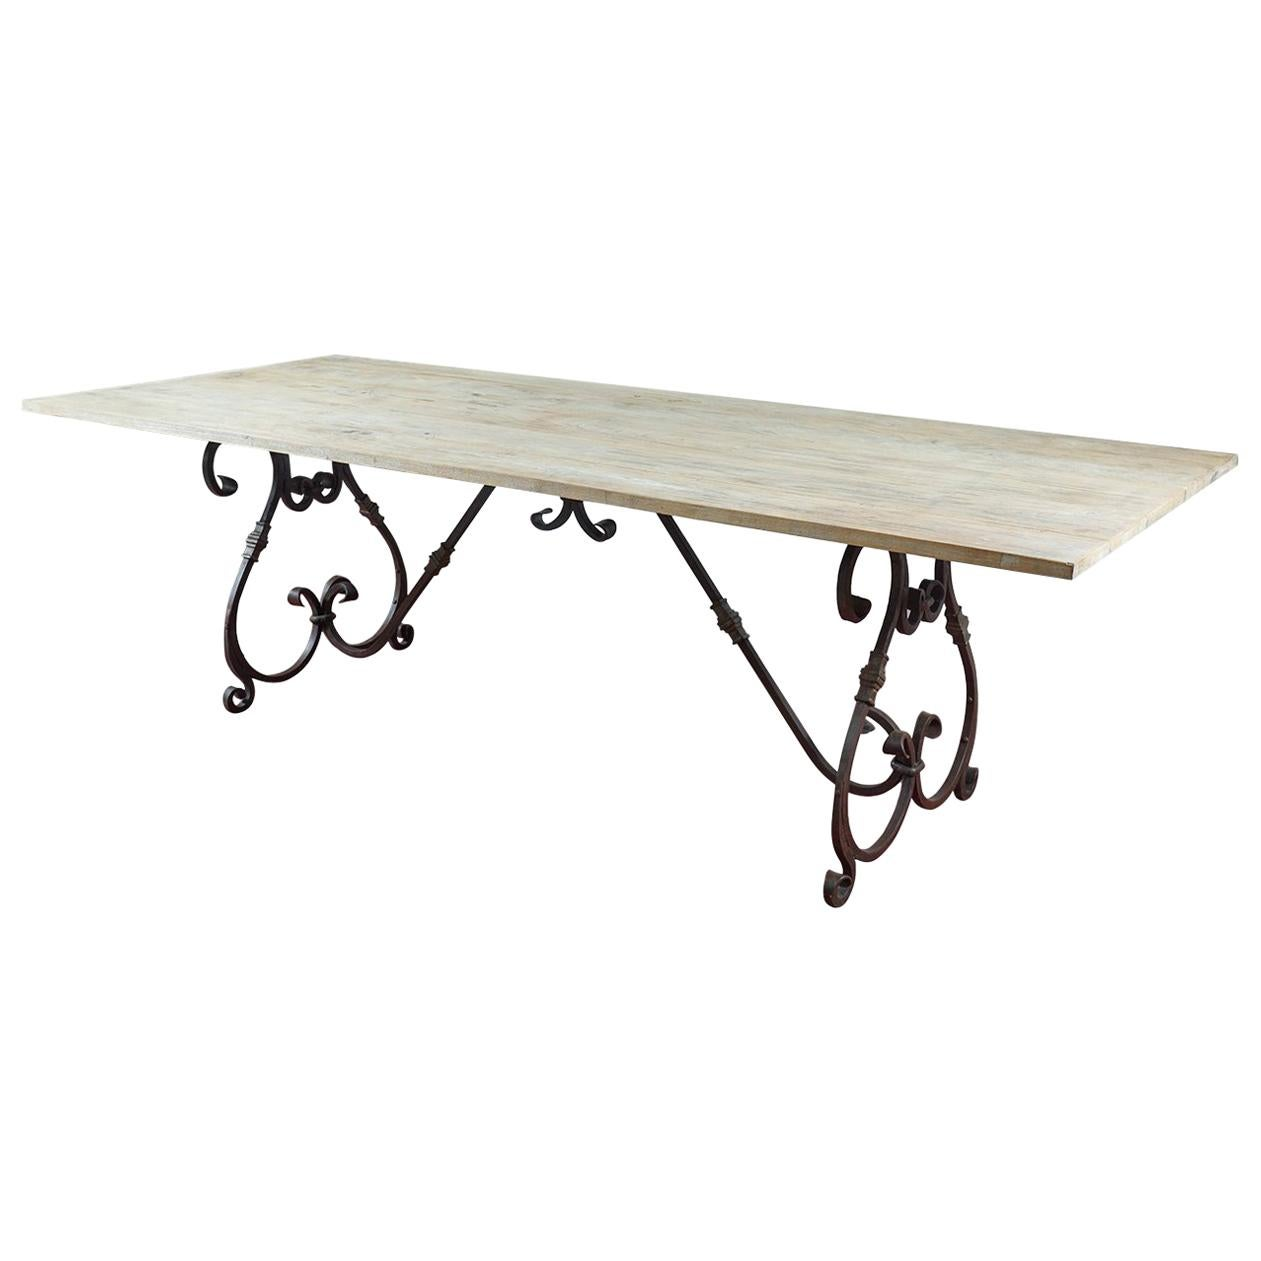 Large Wrought Iron Base And Teak Wood Top Dining Table, Seats 8 To 10 For